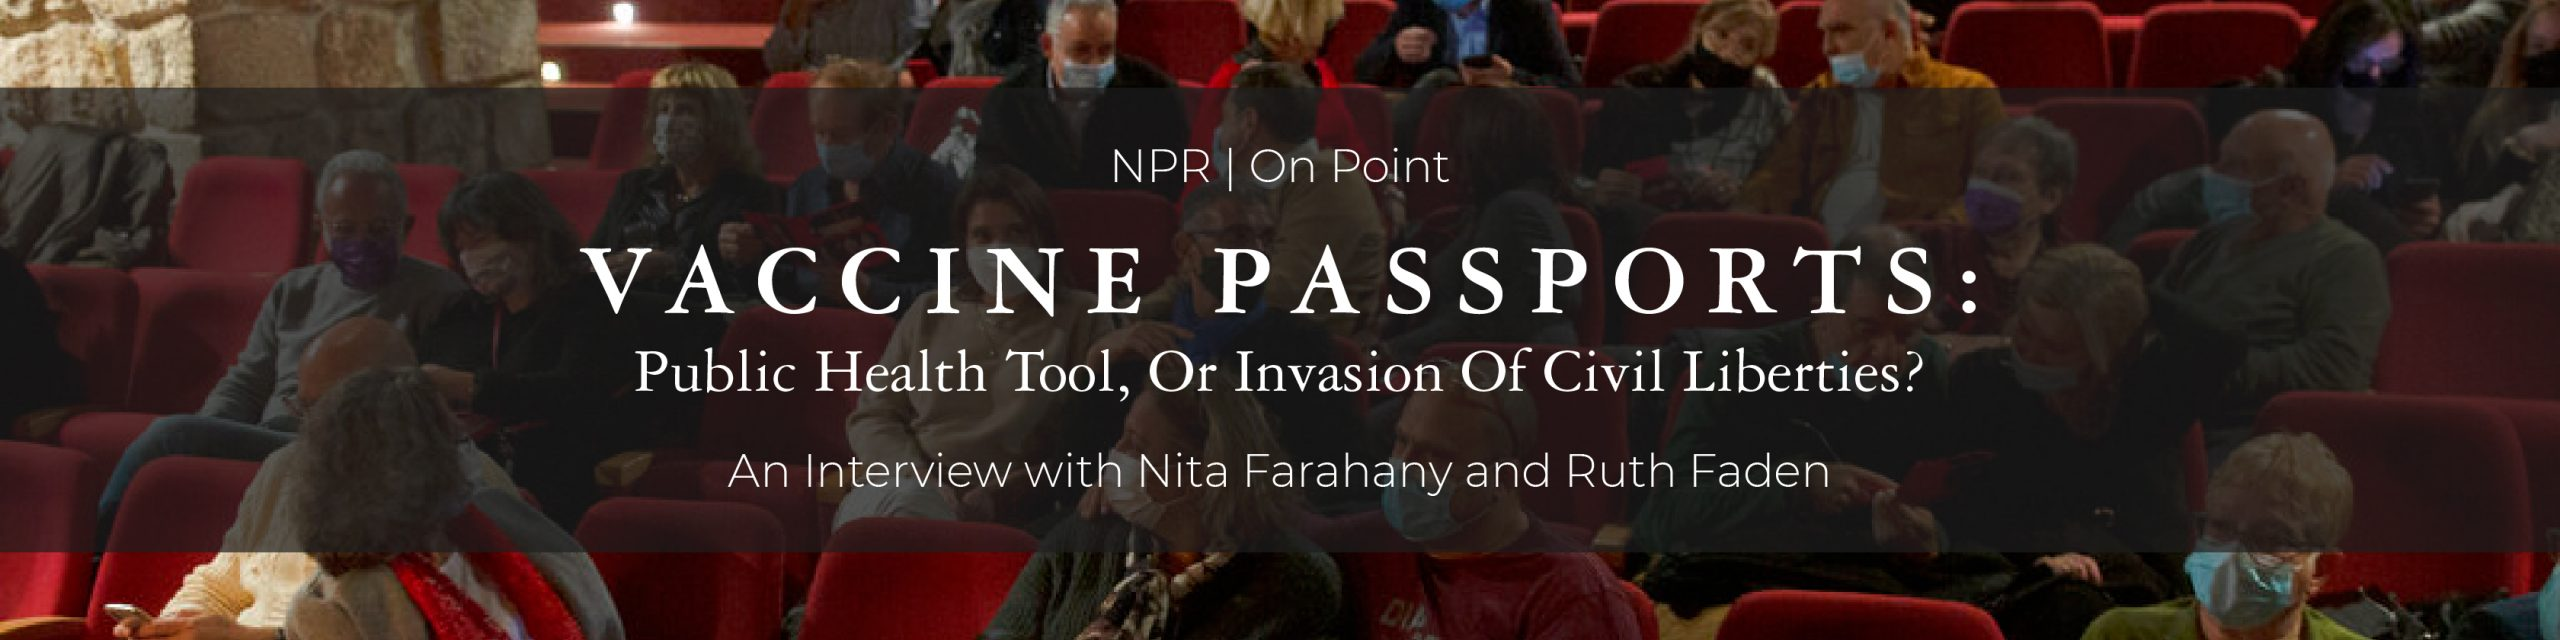 NPR On Point: Vaccine Passports - Public Health Tool, or Invasion of Civil Liberties, an interview with Nita Farahany and Ruth Faden